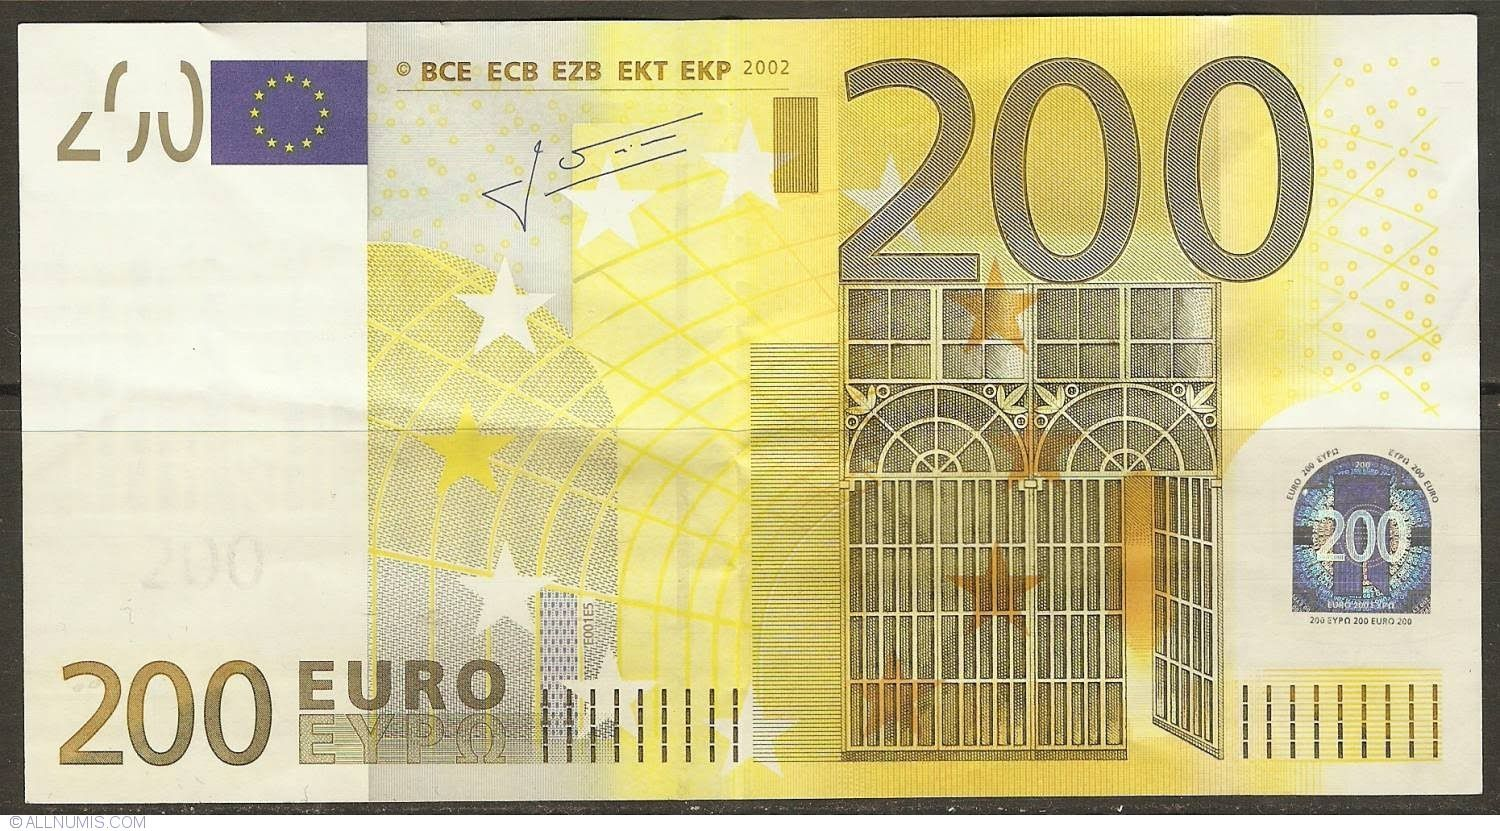 What objects are depicted on EURO bills of different denominations Why them